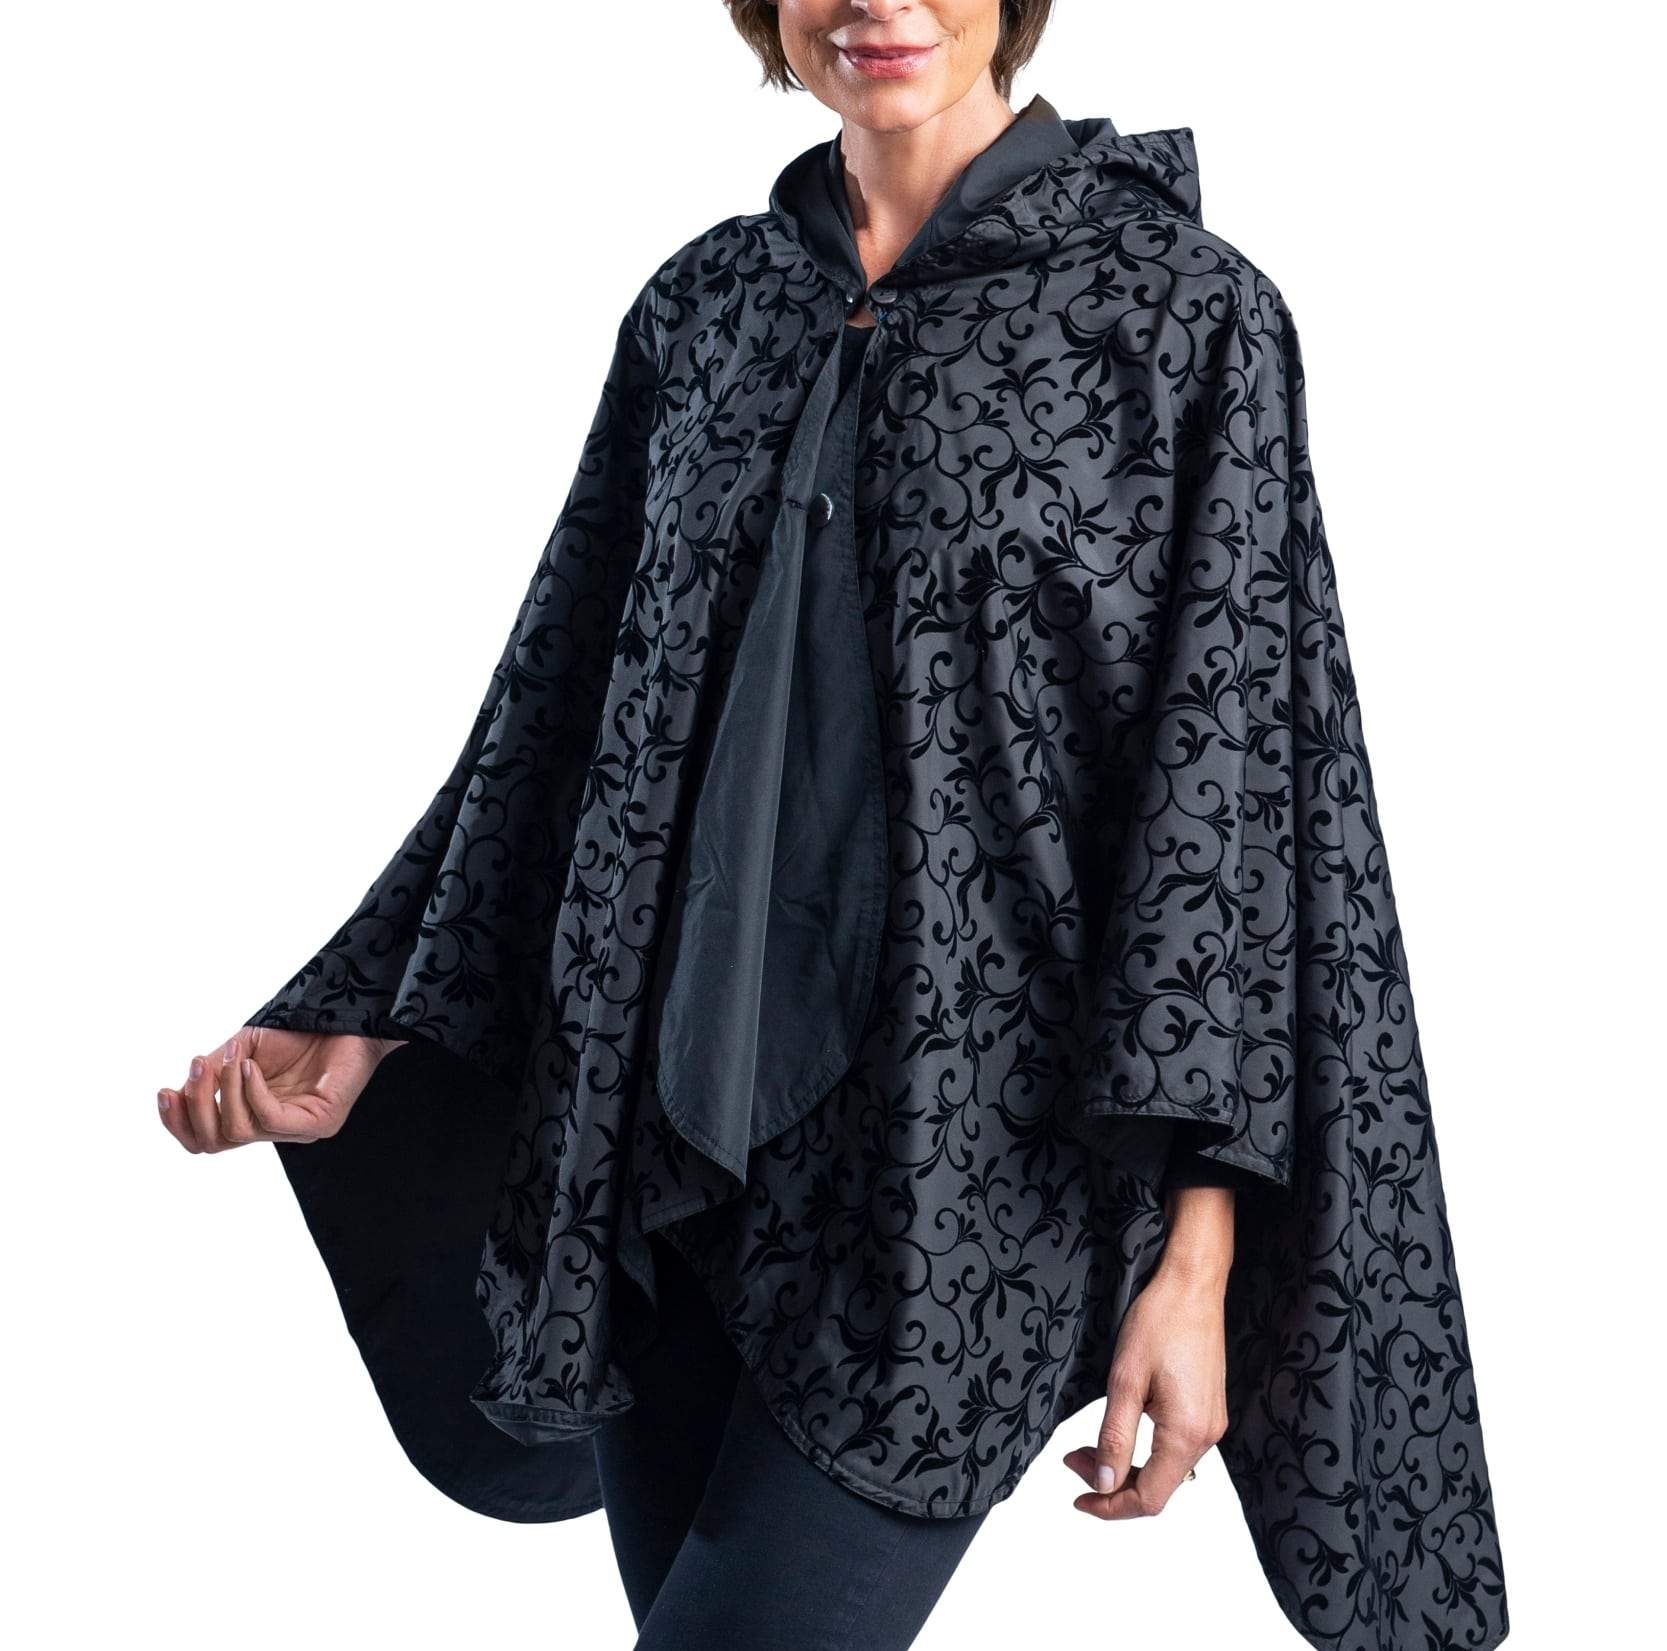 RainCaper Black with Velvet Swirls Travel Cape & Womens Rain Wrap